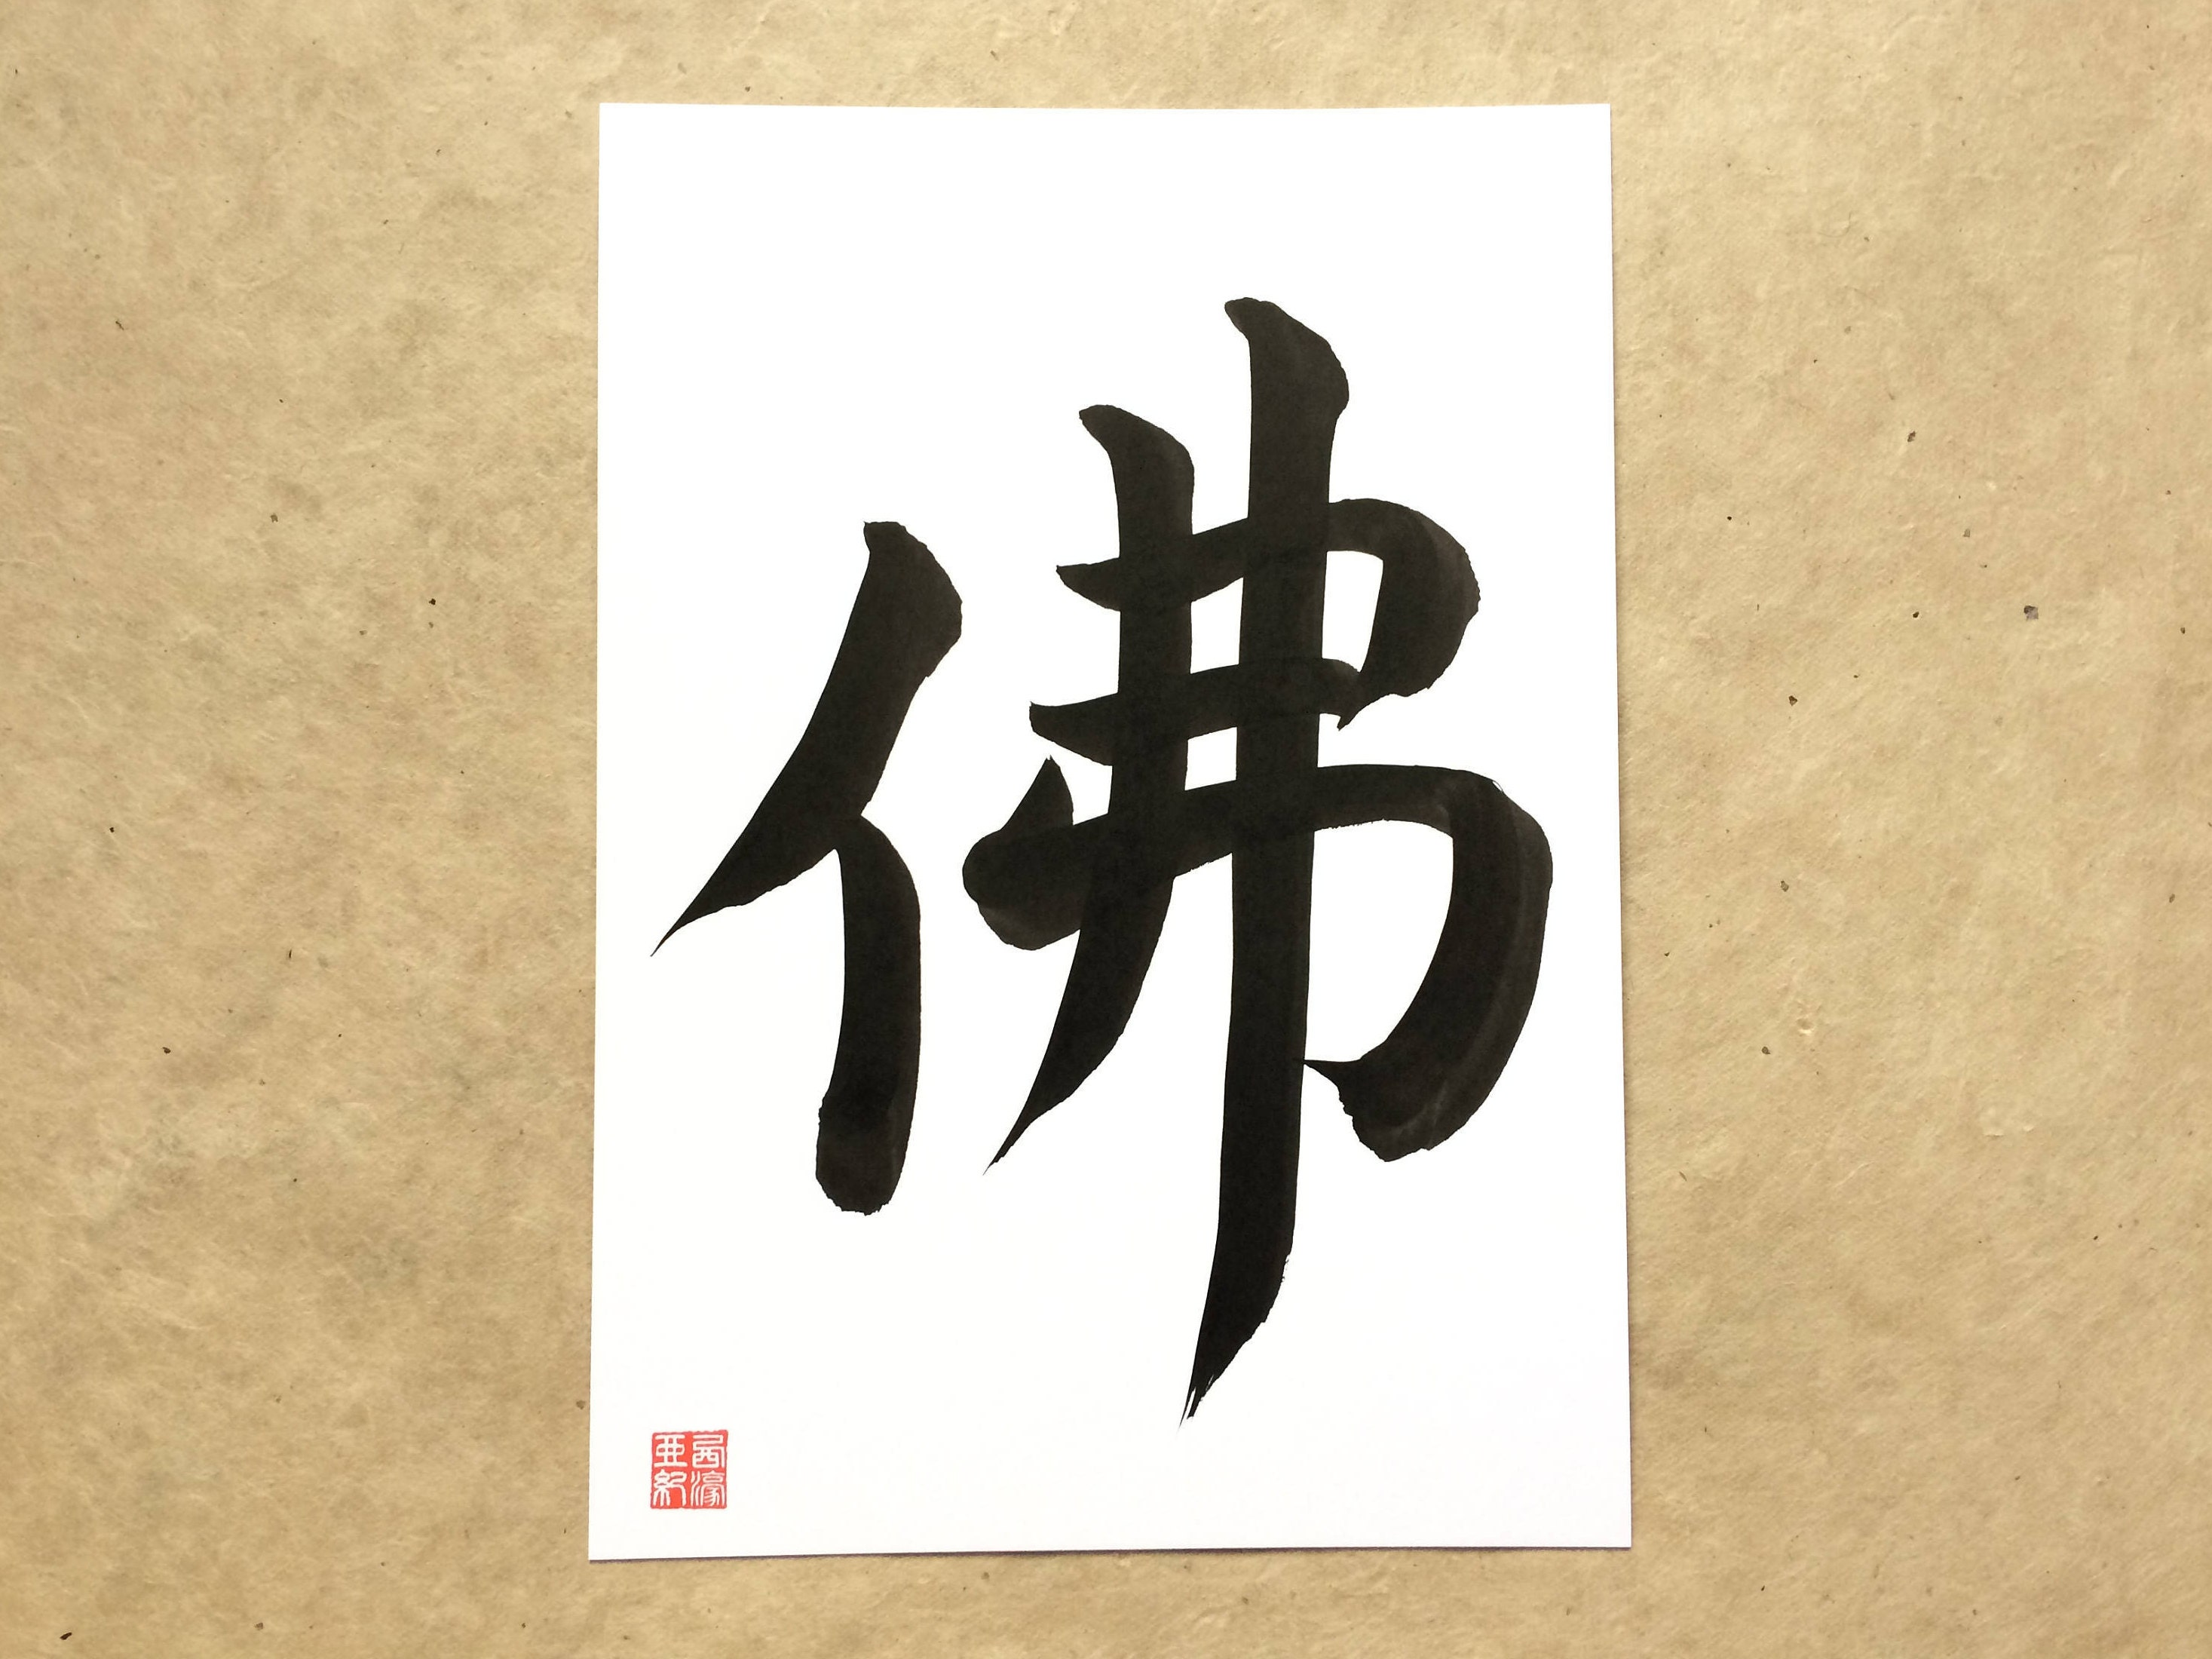 BUDDHA in Traditional Writing Japanese Calligraphy Kanji | Etsy